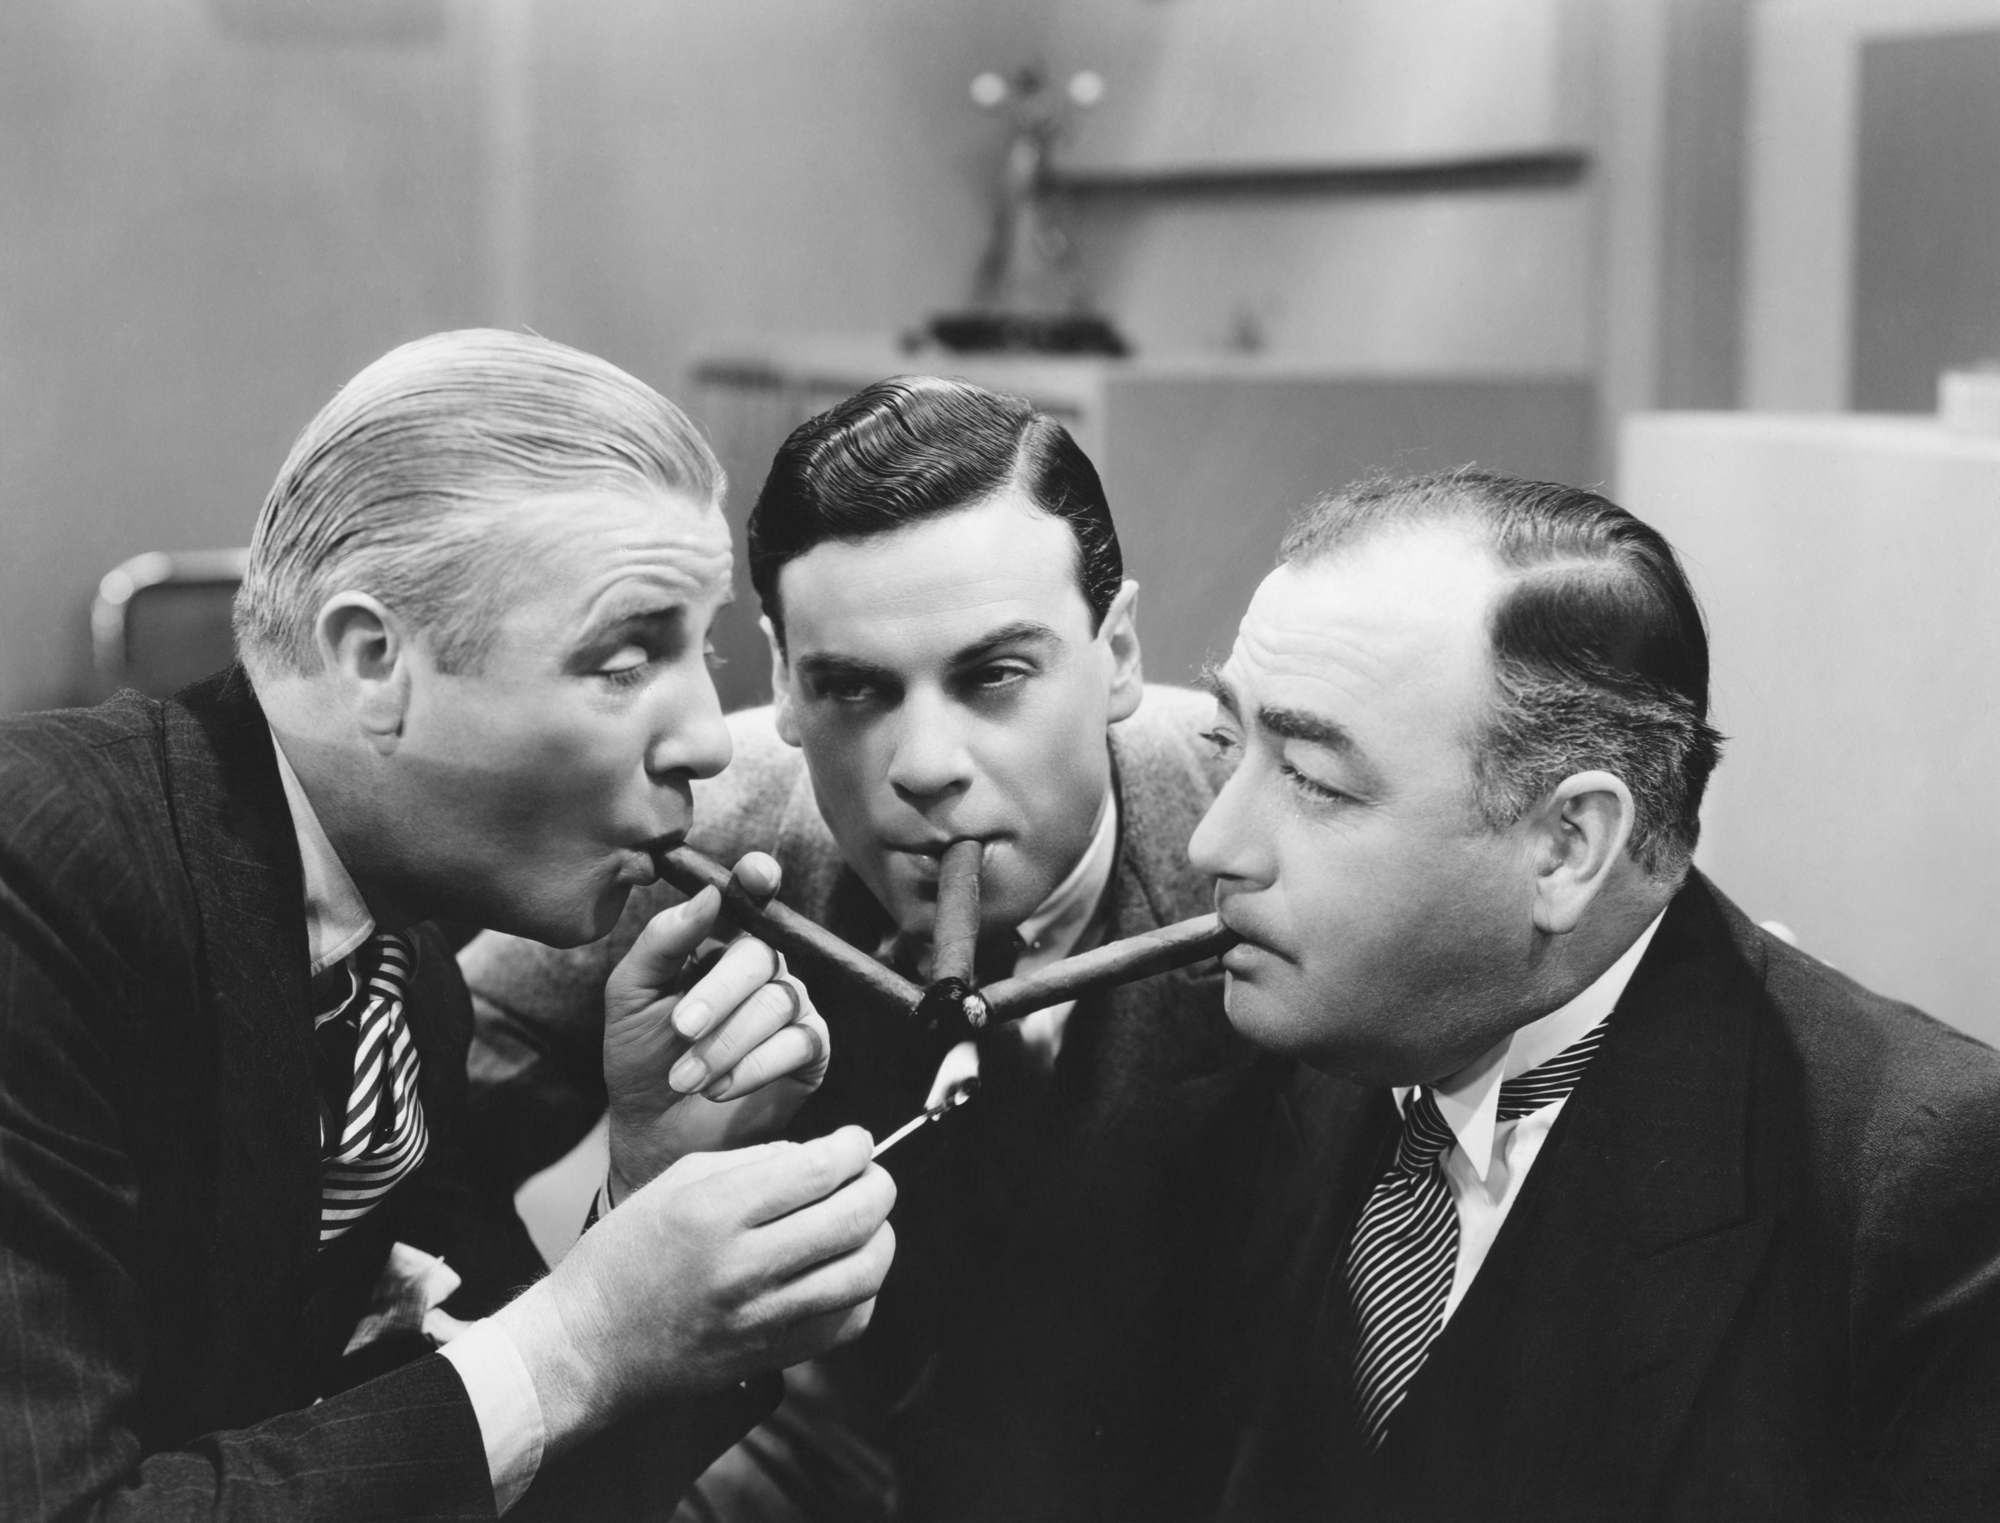 Top New Baby Cigars Best It's a Boy Cigars It's a Girl Cigars three men celebrating with cigars together